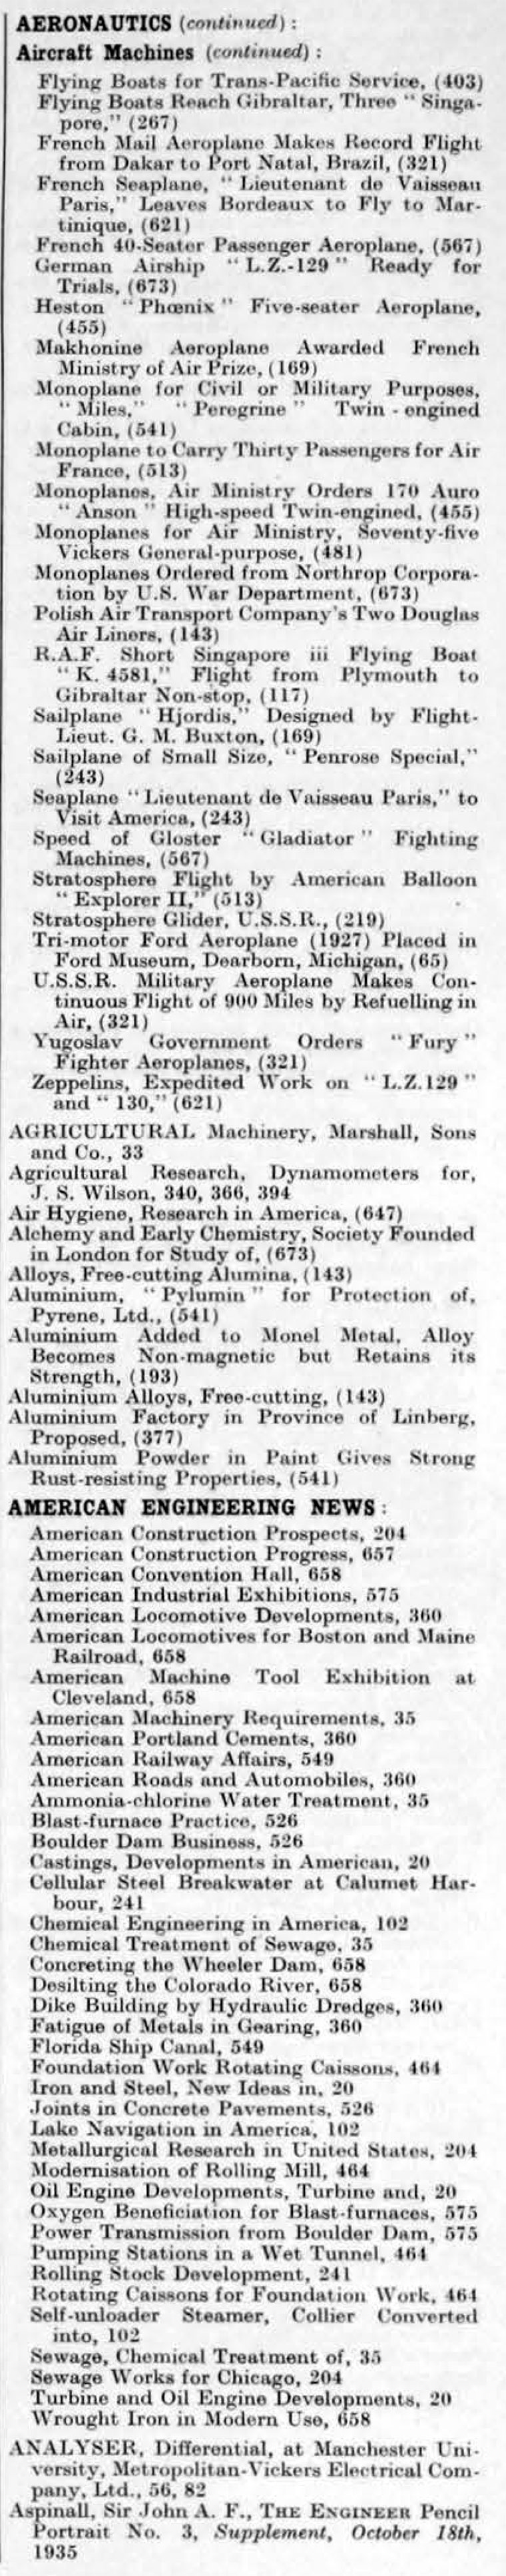 The Engineer 1935 Jul Dec Index